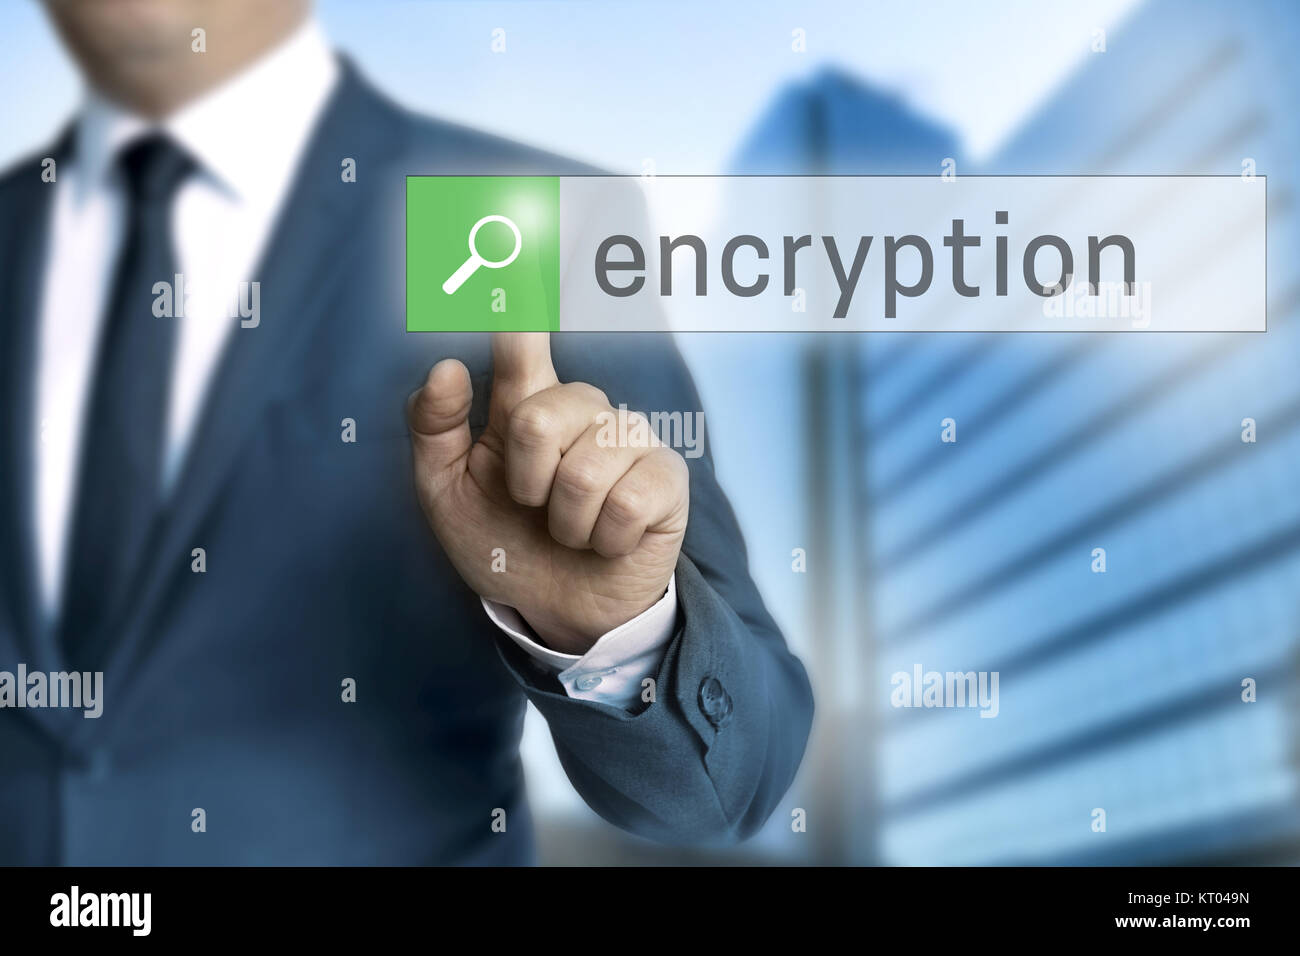 encryption browser is operated by a businessman - Stock Image